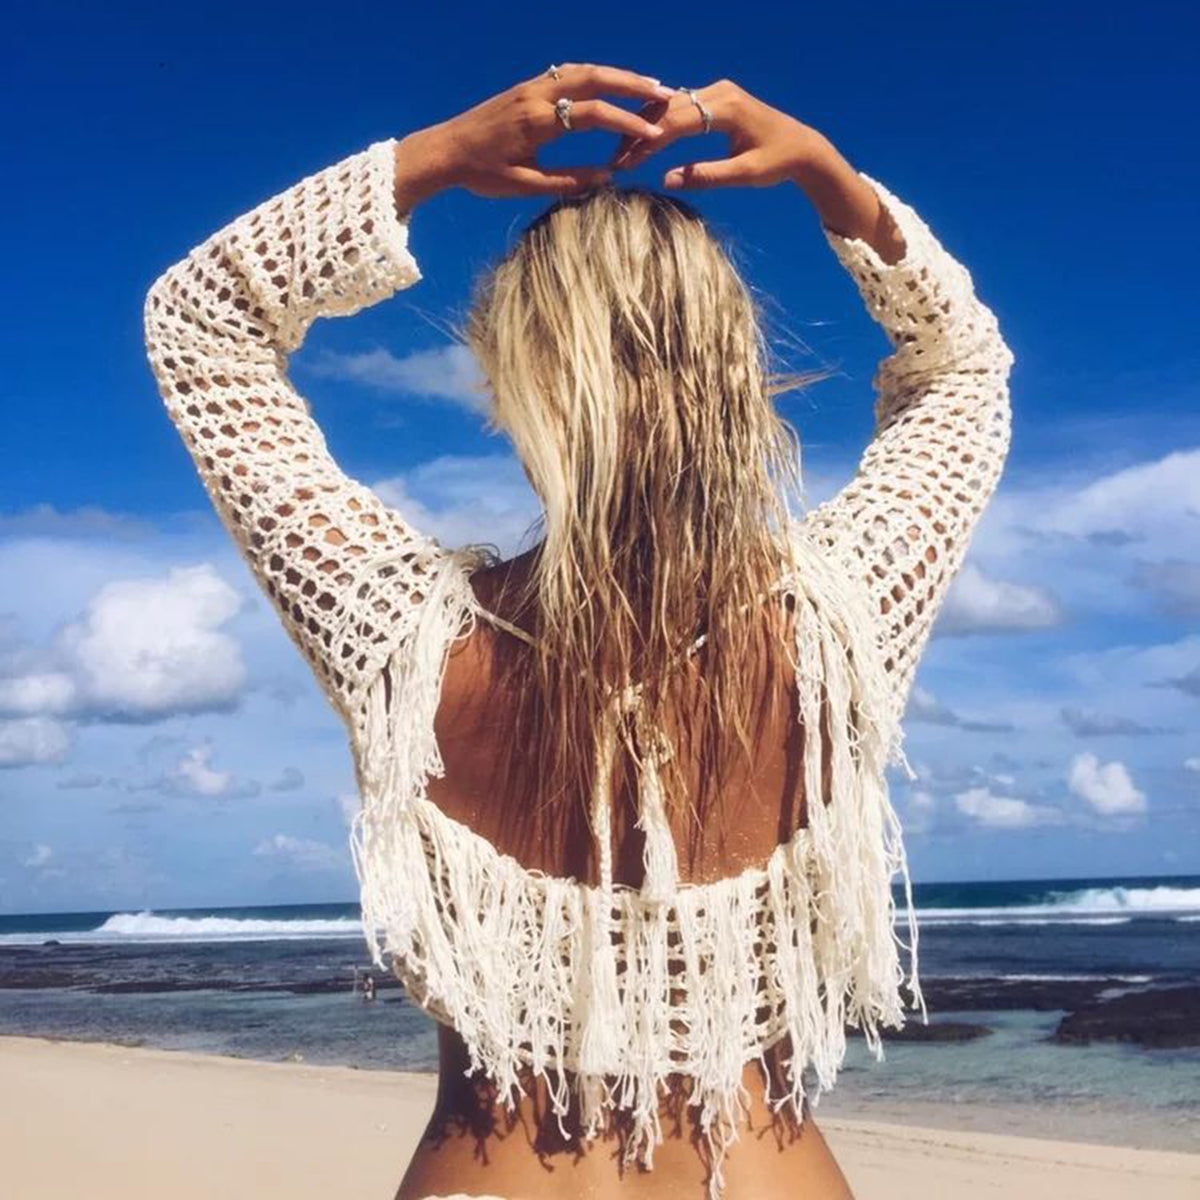 Handmade Sexy Backless Fish Net Cover-Up - worthtryit.com